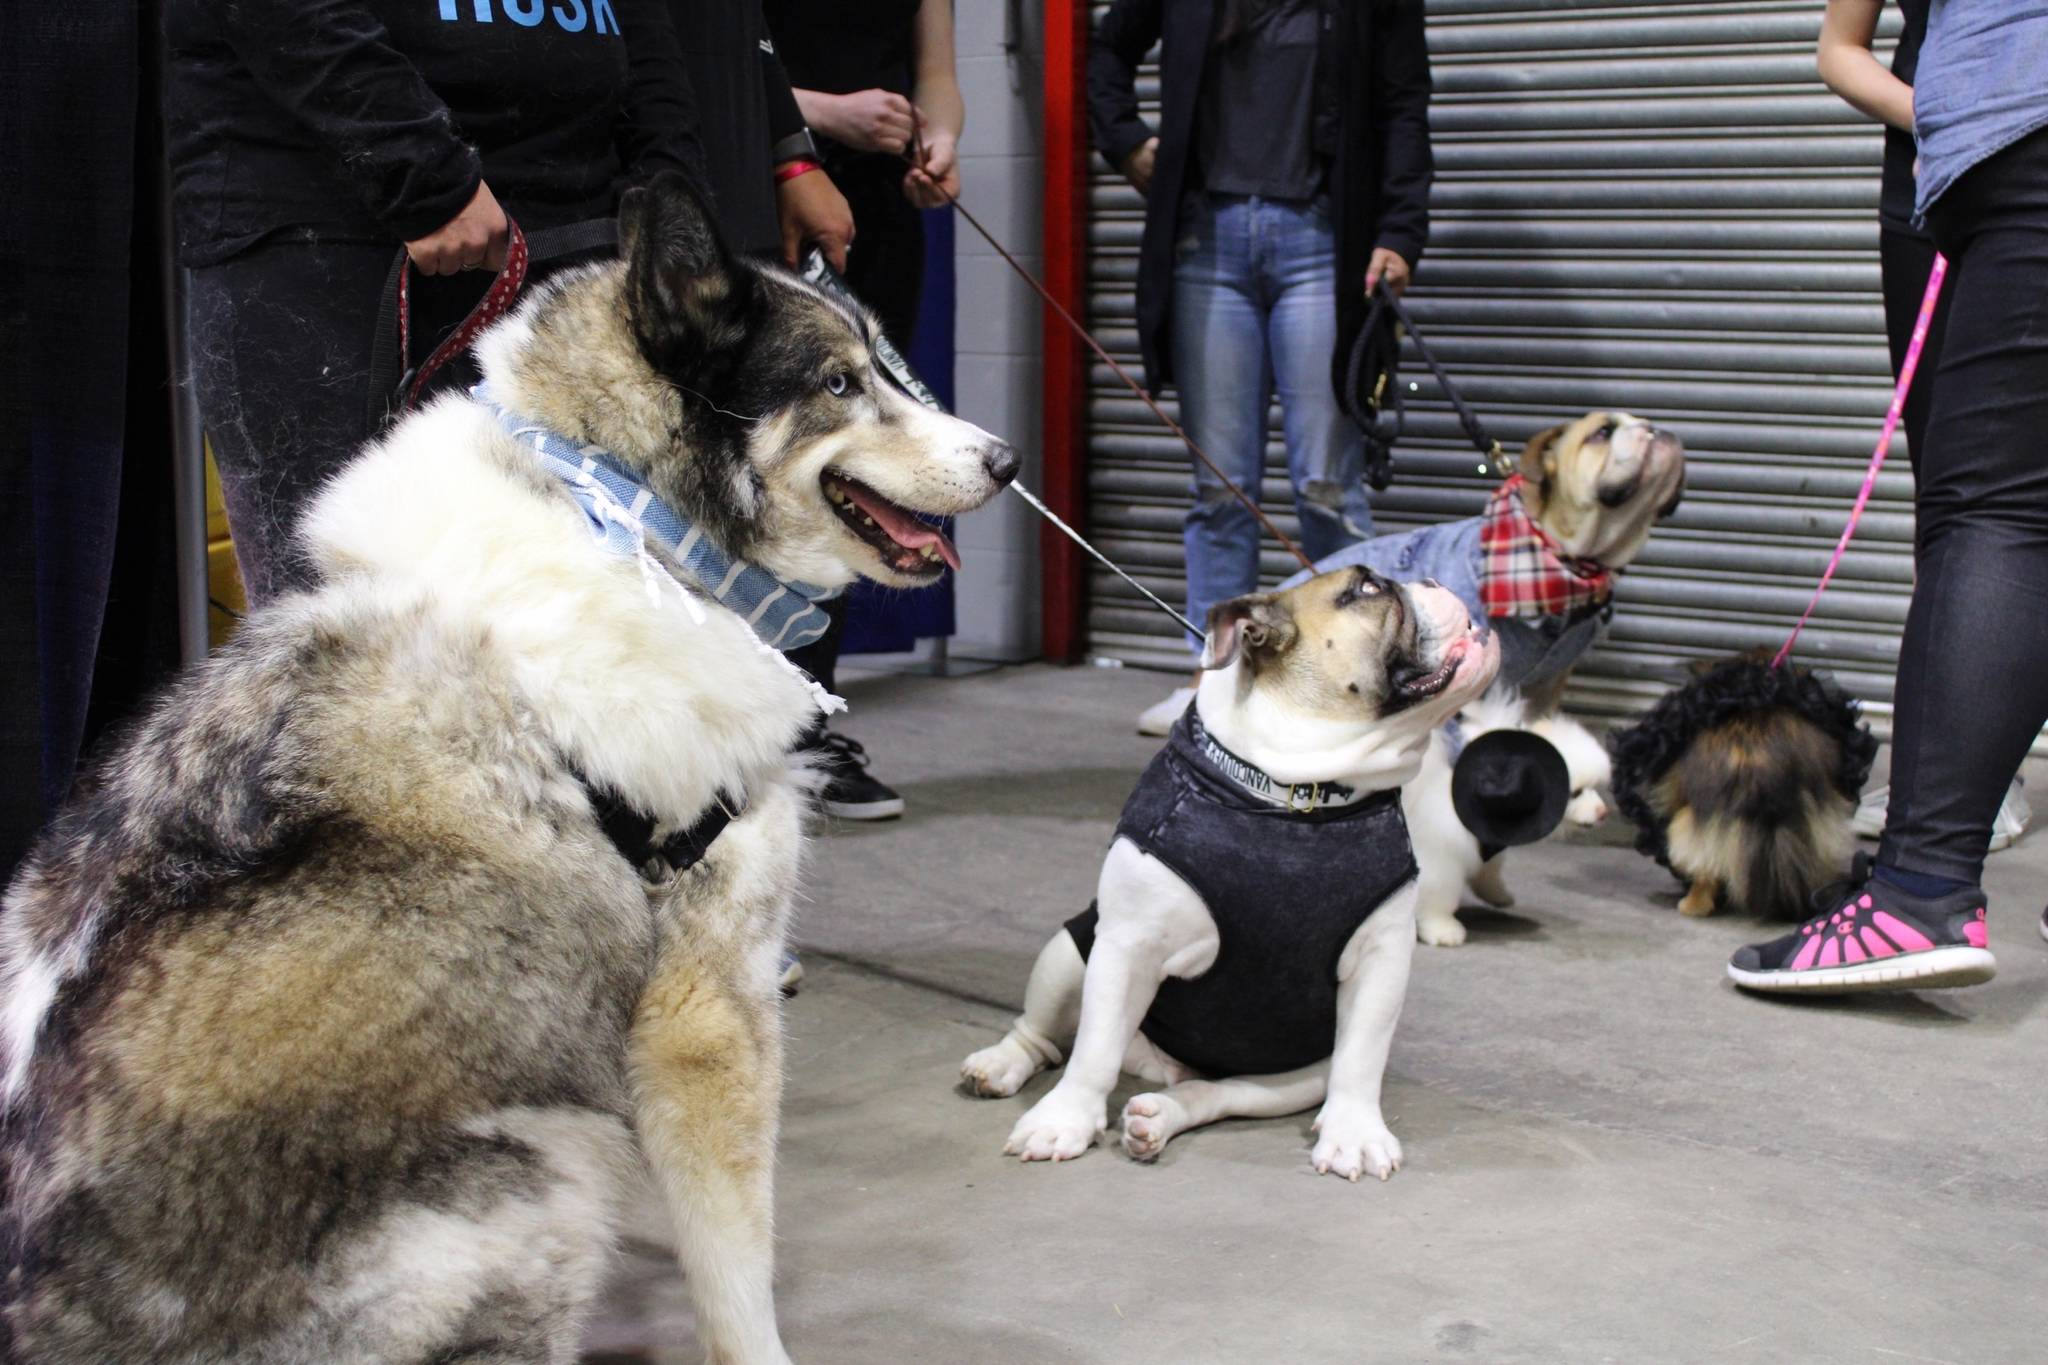 English bulldogs and even a pony were dressed up for the dog fashion show at the Here for Kids Expo inside the Cloverdale Agriplex (Photos by Kieran O'Connor/Black Press Media).